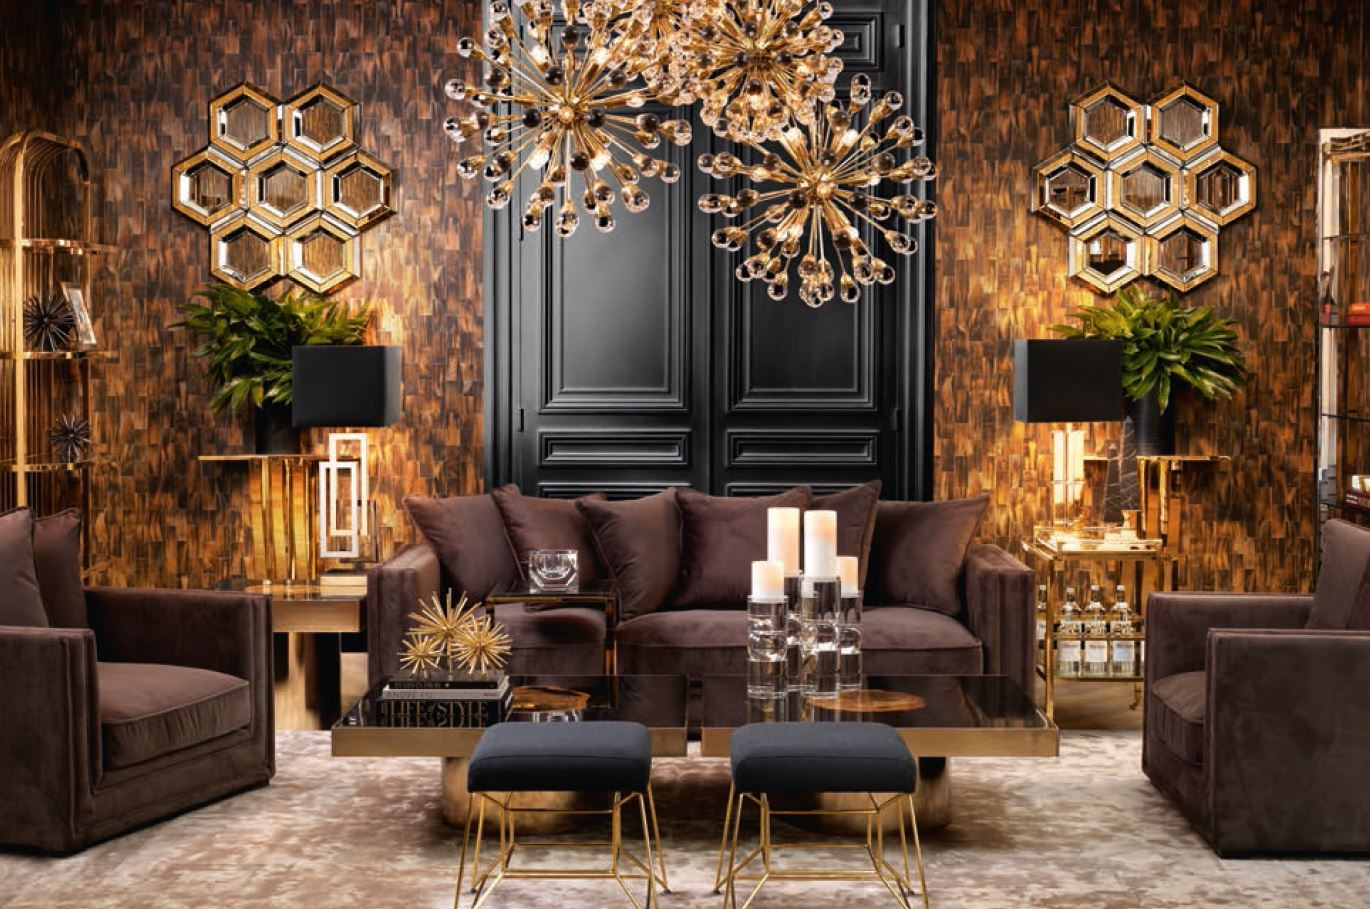 Adorn Your Ceilings With Eichholtz Style Chandelier